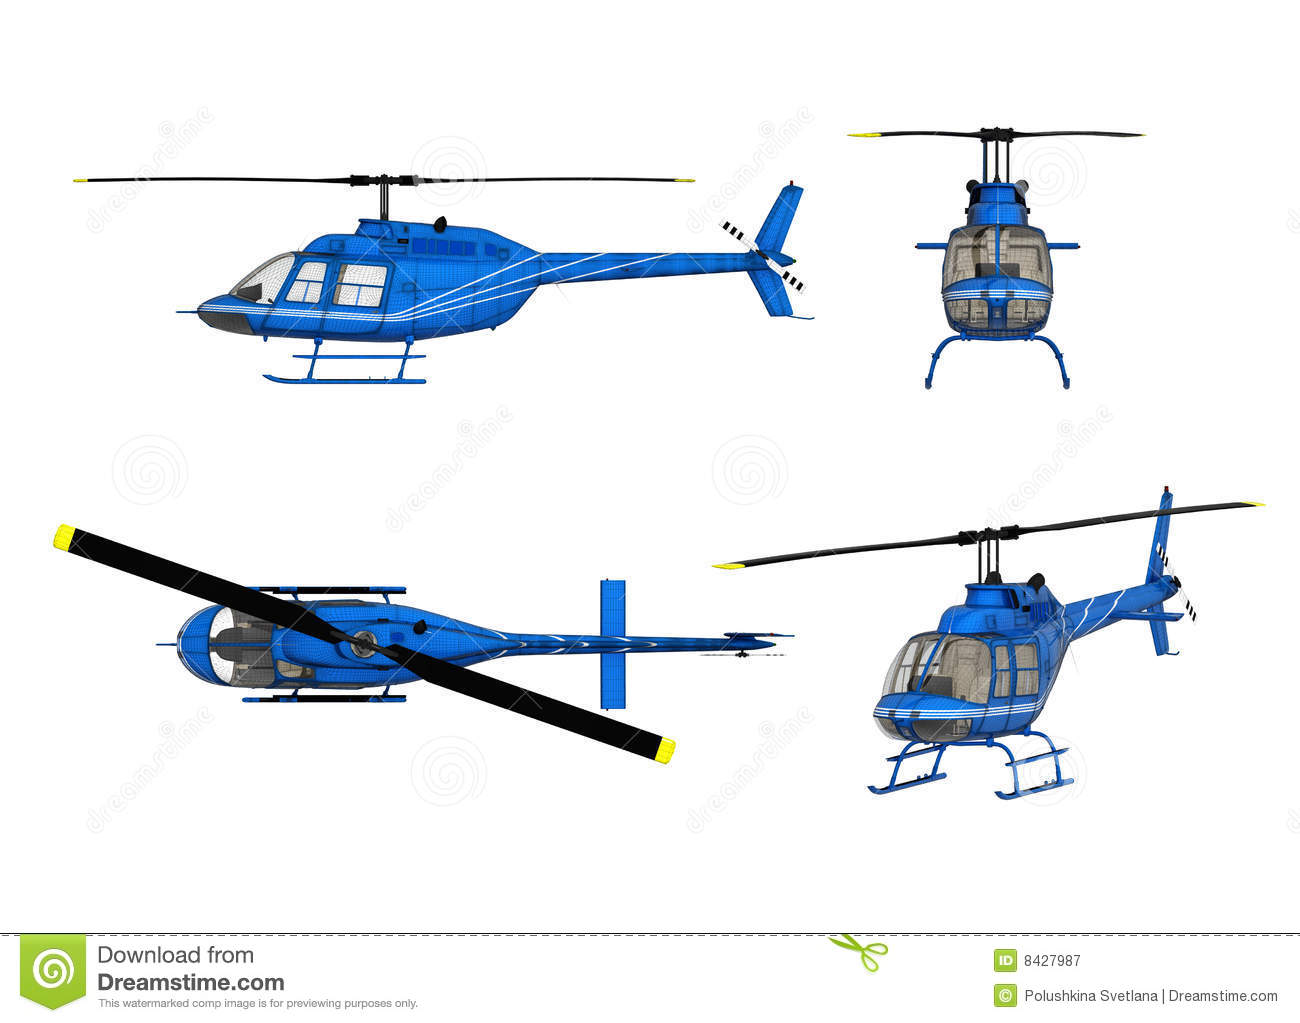 bell helicopter prices with Royalty Free Stock Photography Drawing Helicopter Structure Image8427987 on Stock Image Aircraft Instruments Set Six Avionics Eps Vector Illustration Image33549111 in addition Royalty Free Stock Images Drawing Helicopter Image8427989 moreover Coffin additionally R44 Raven additionally Editorial Stock Image Vintage Huey Helicopter Monroe Nc November Uh H Performing Warbirds Over Monroe Air Show Monroe Nc Image46780579.